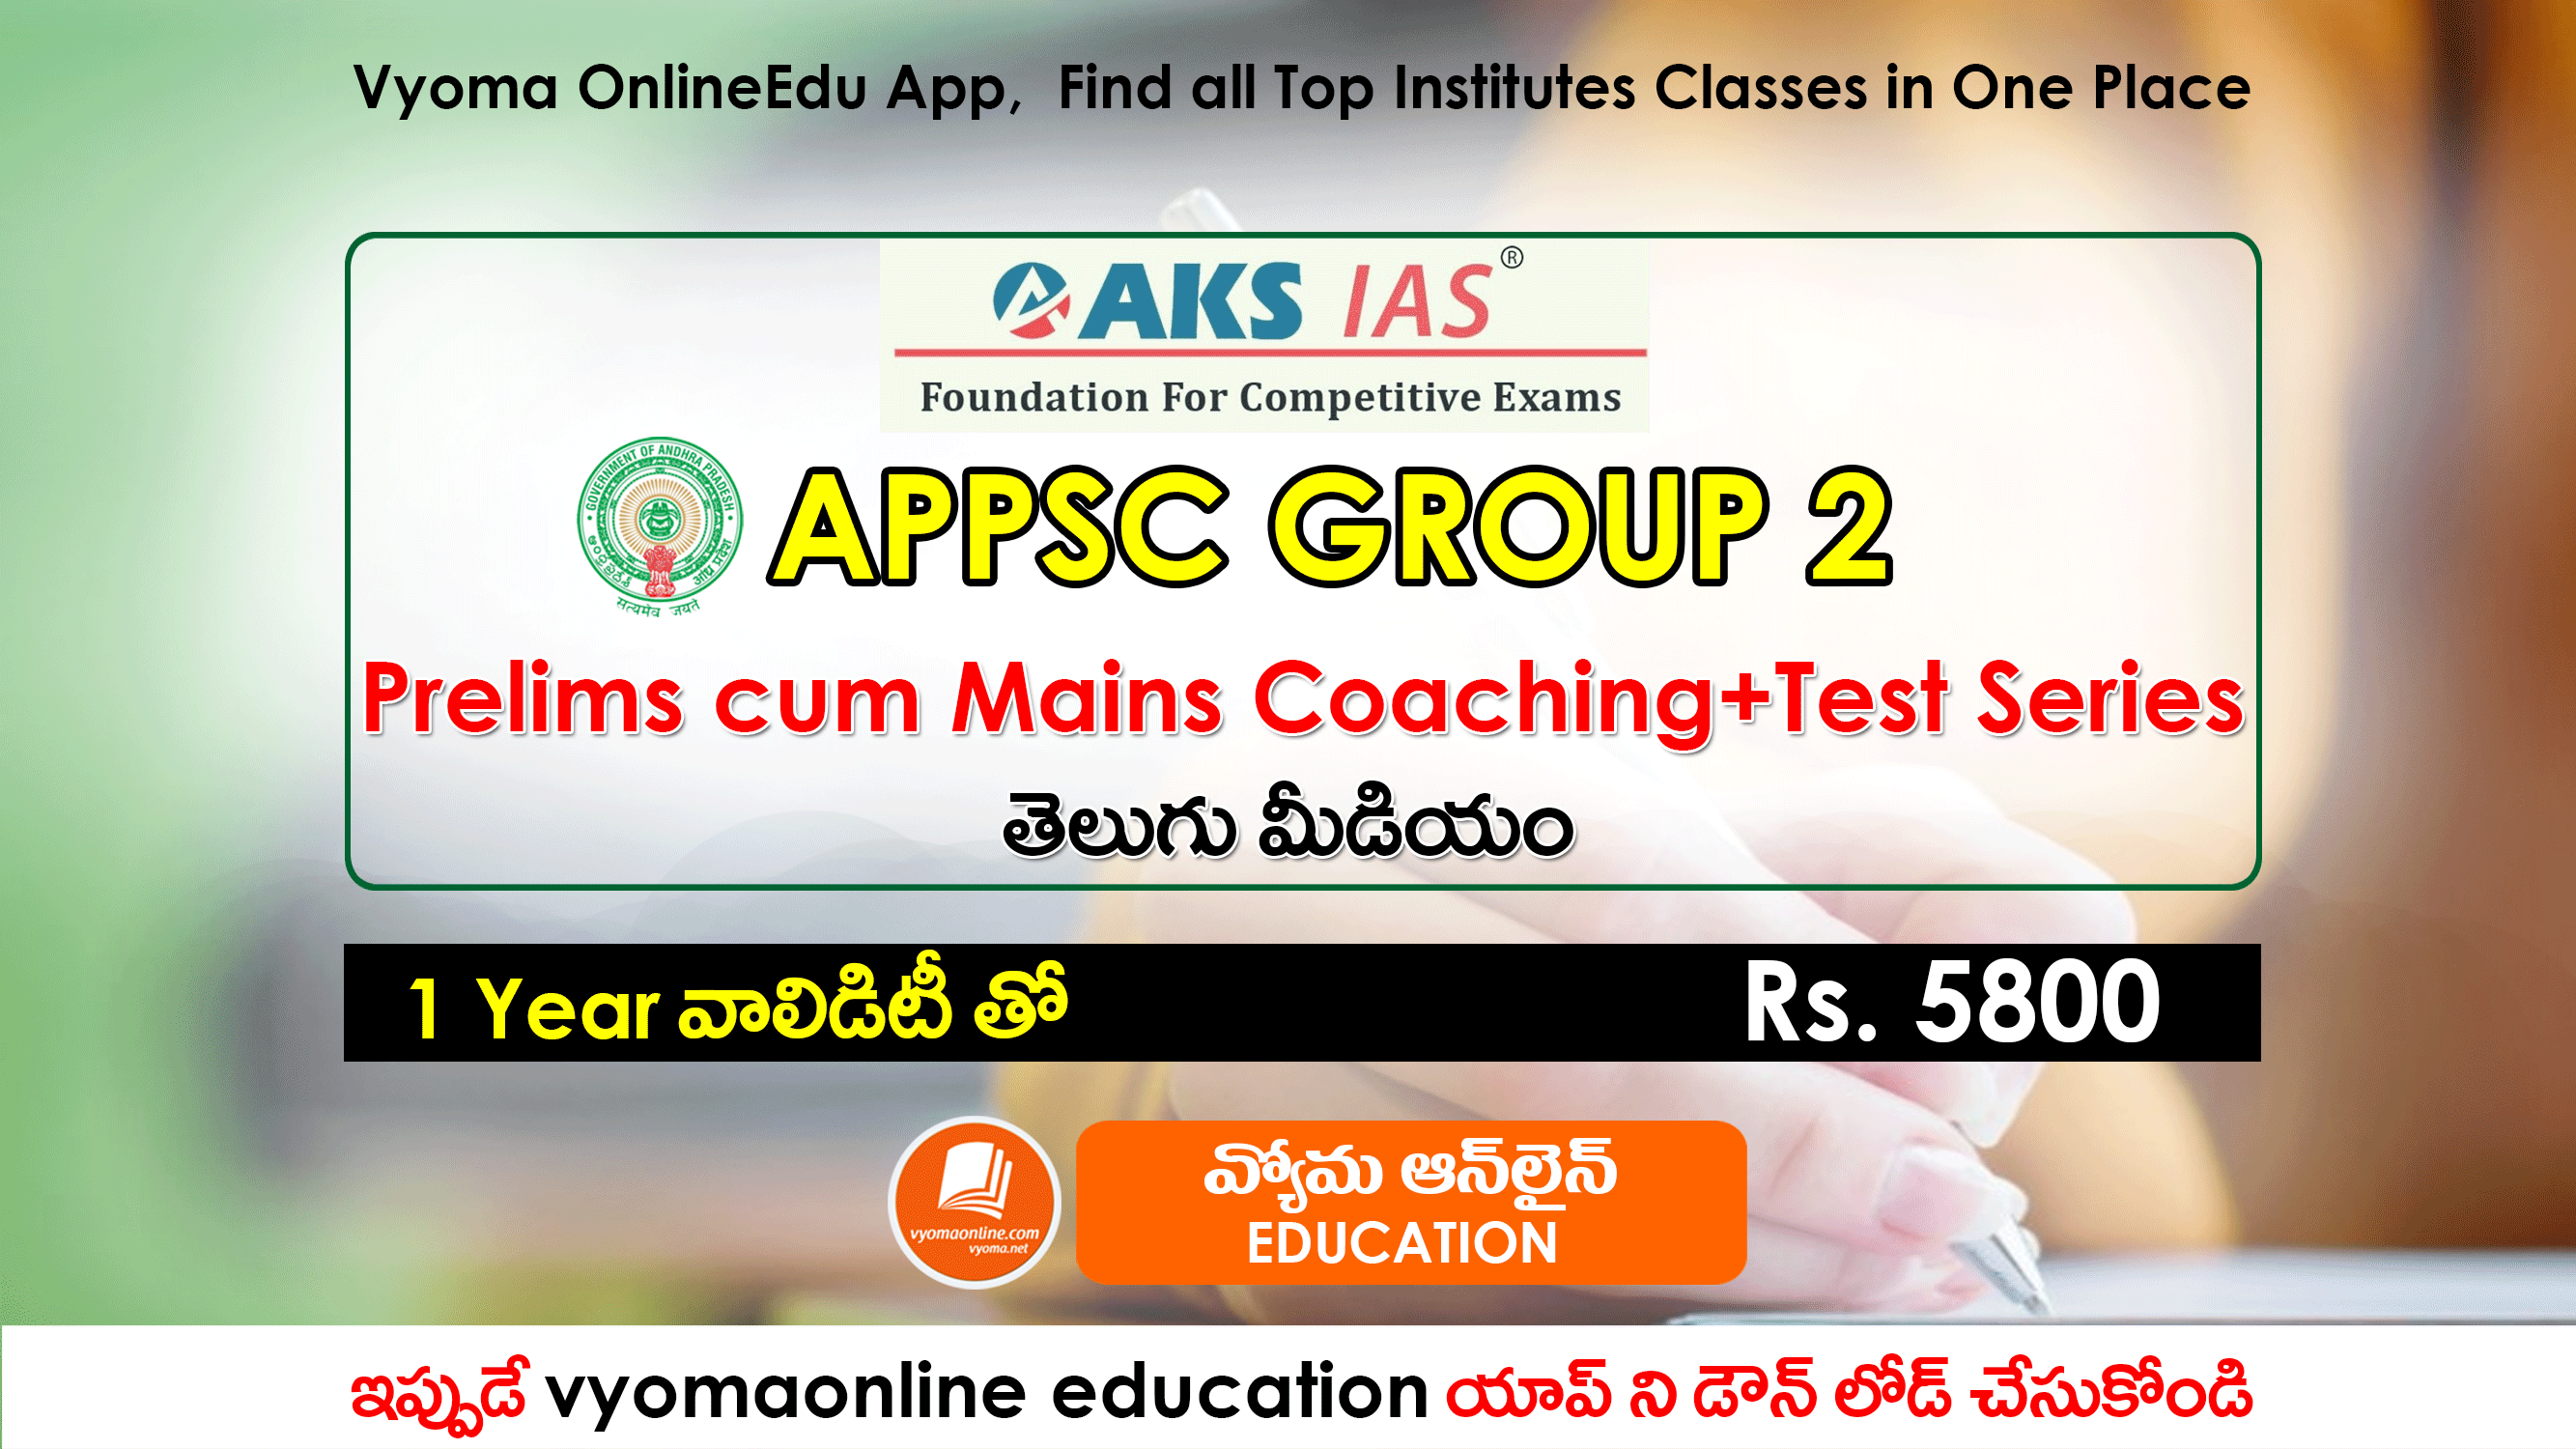 APPSC Group 2 (Telugu/Medium) Prelims cum Mains Coaching+Test Series